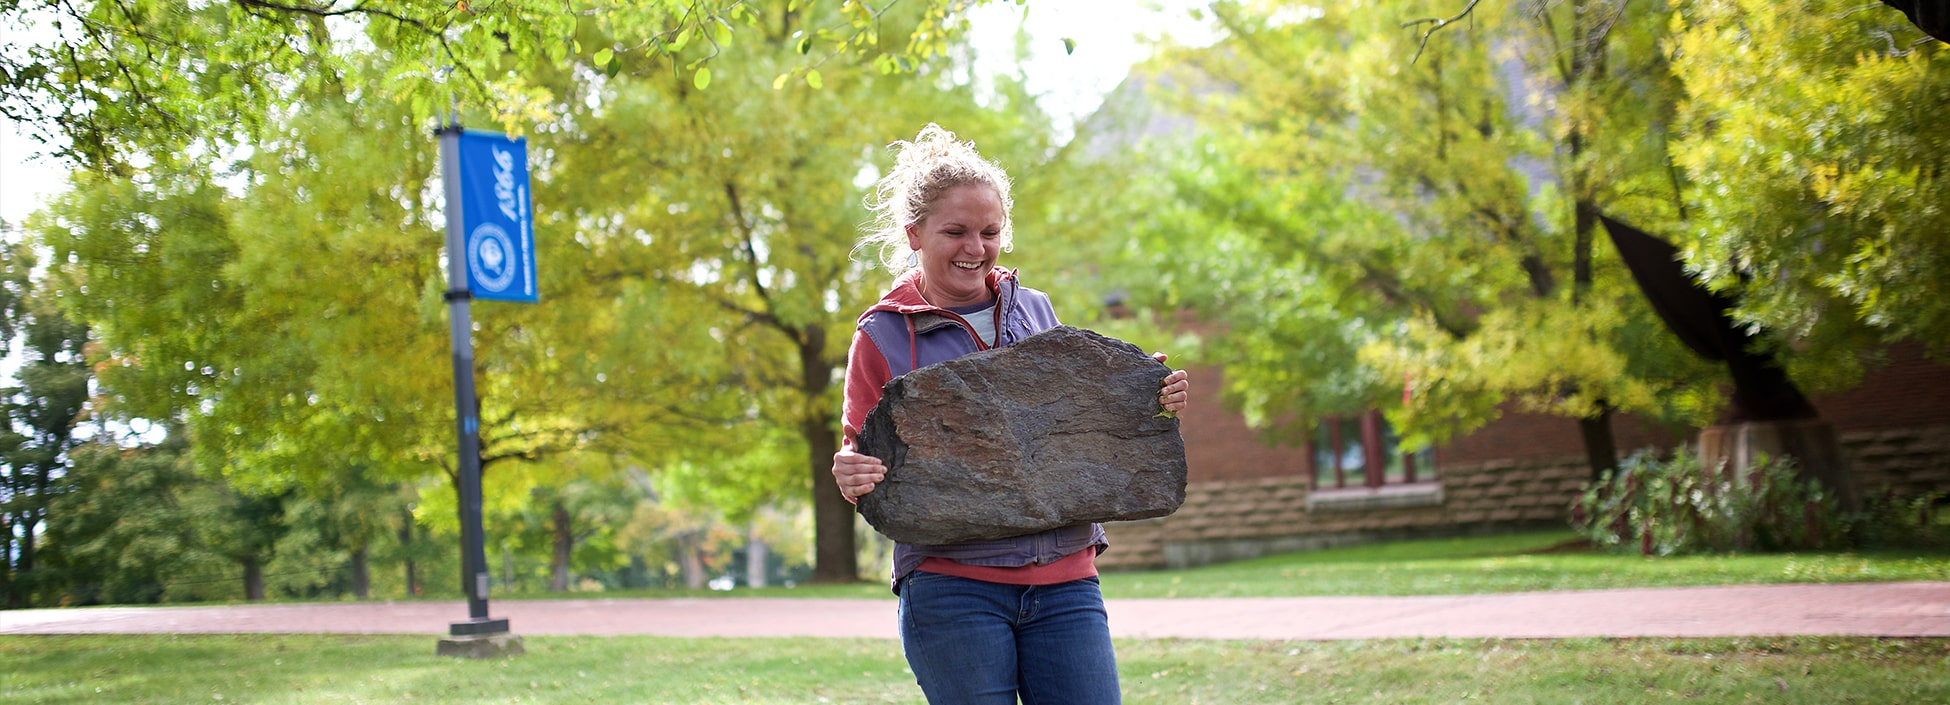 A landscape student carries a rock while learning to build a rock wall formation, female student, smiling, landscape contracting